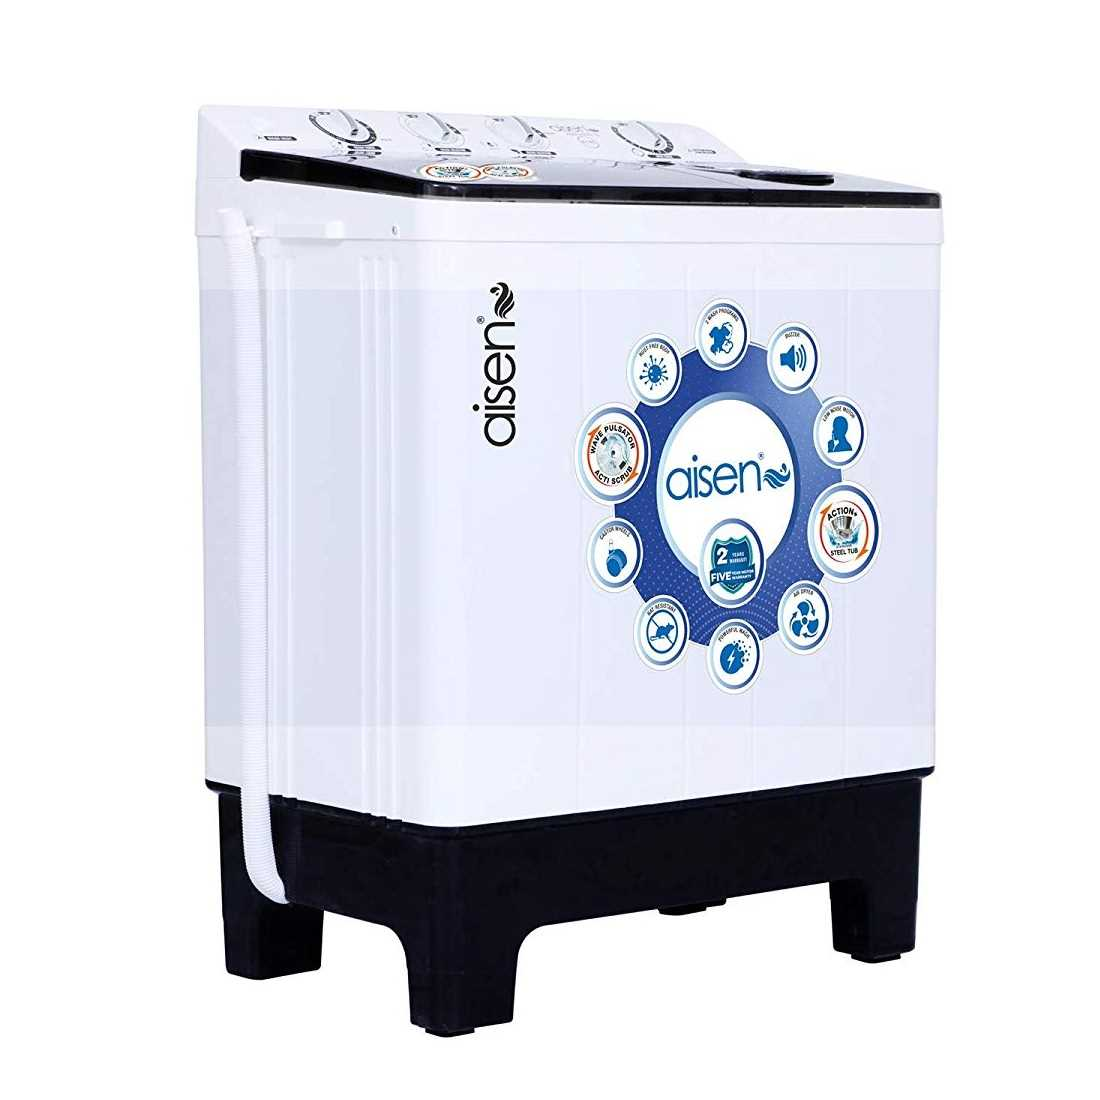 Aisen A85SWM810 8.5 Kg Semi Automatic Top Loading Washing Machine